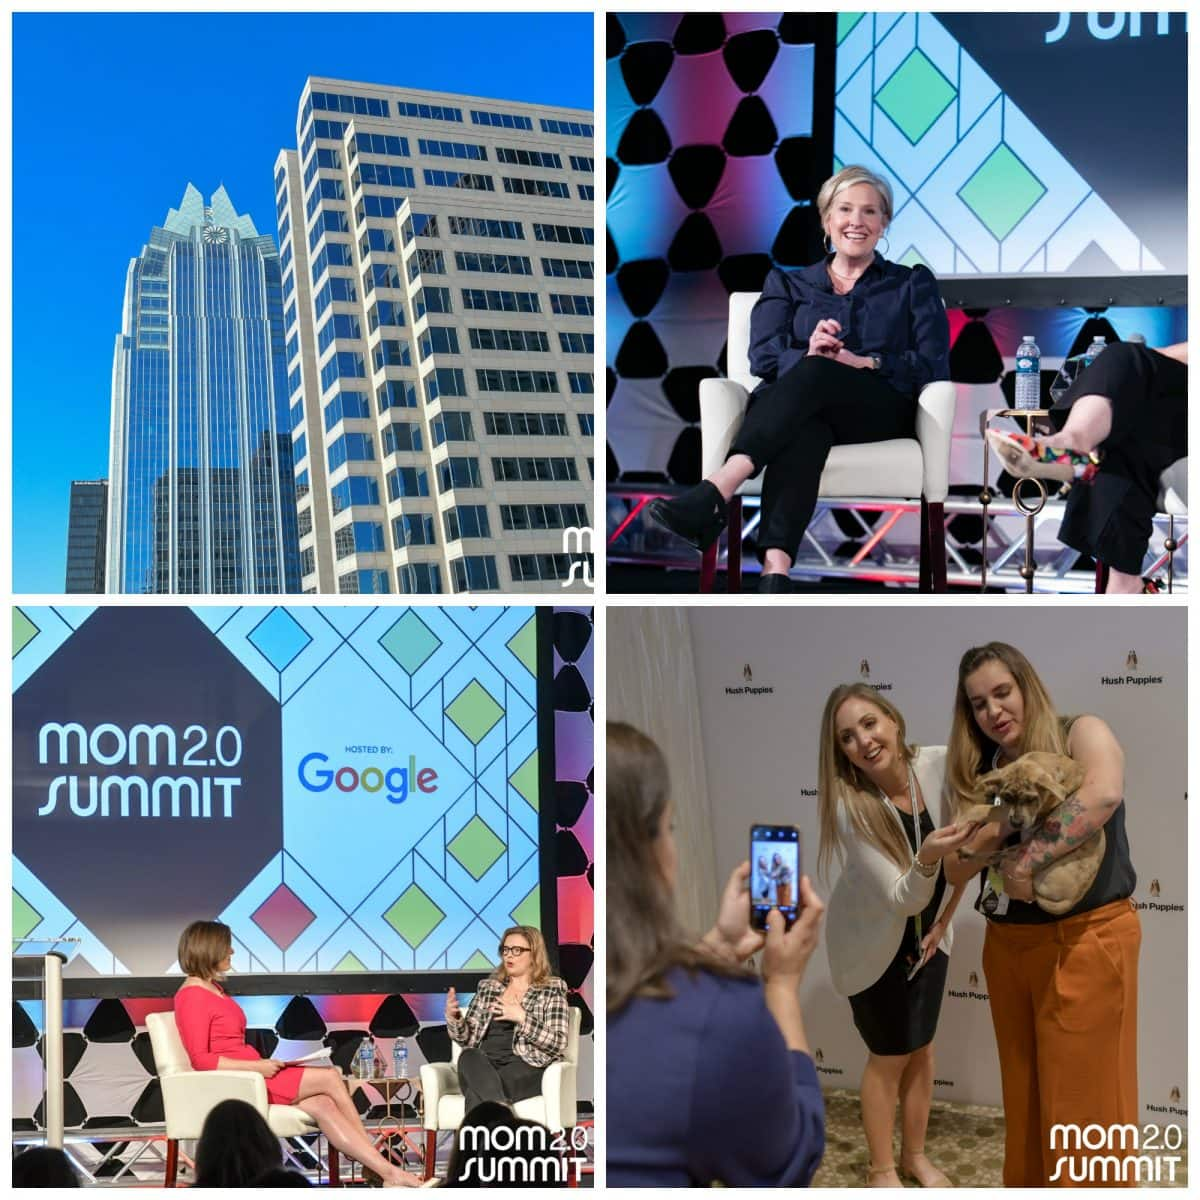 Mom 2.0 Summit 2019 in Austin, TX